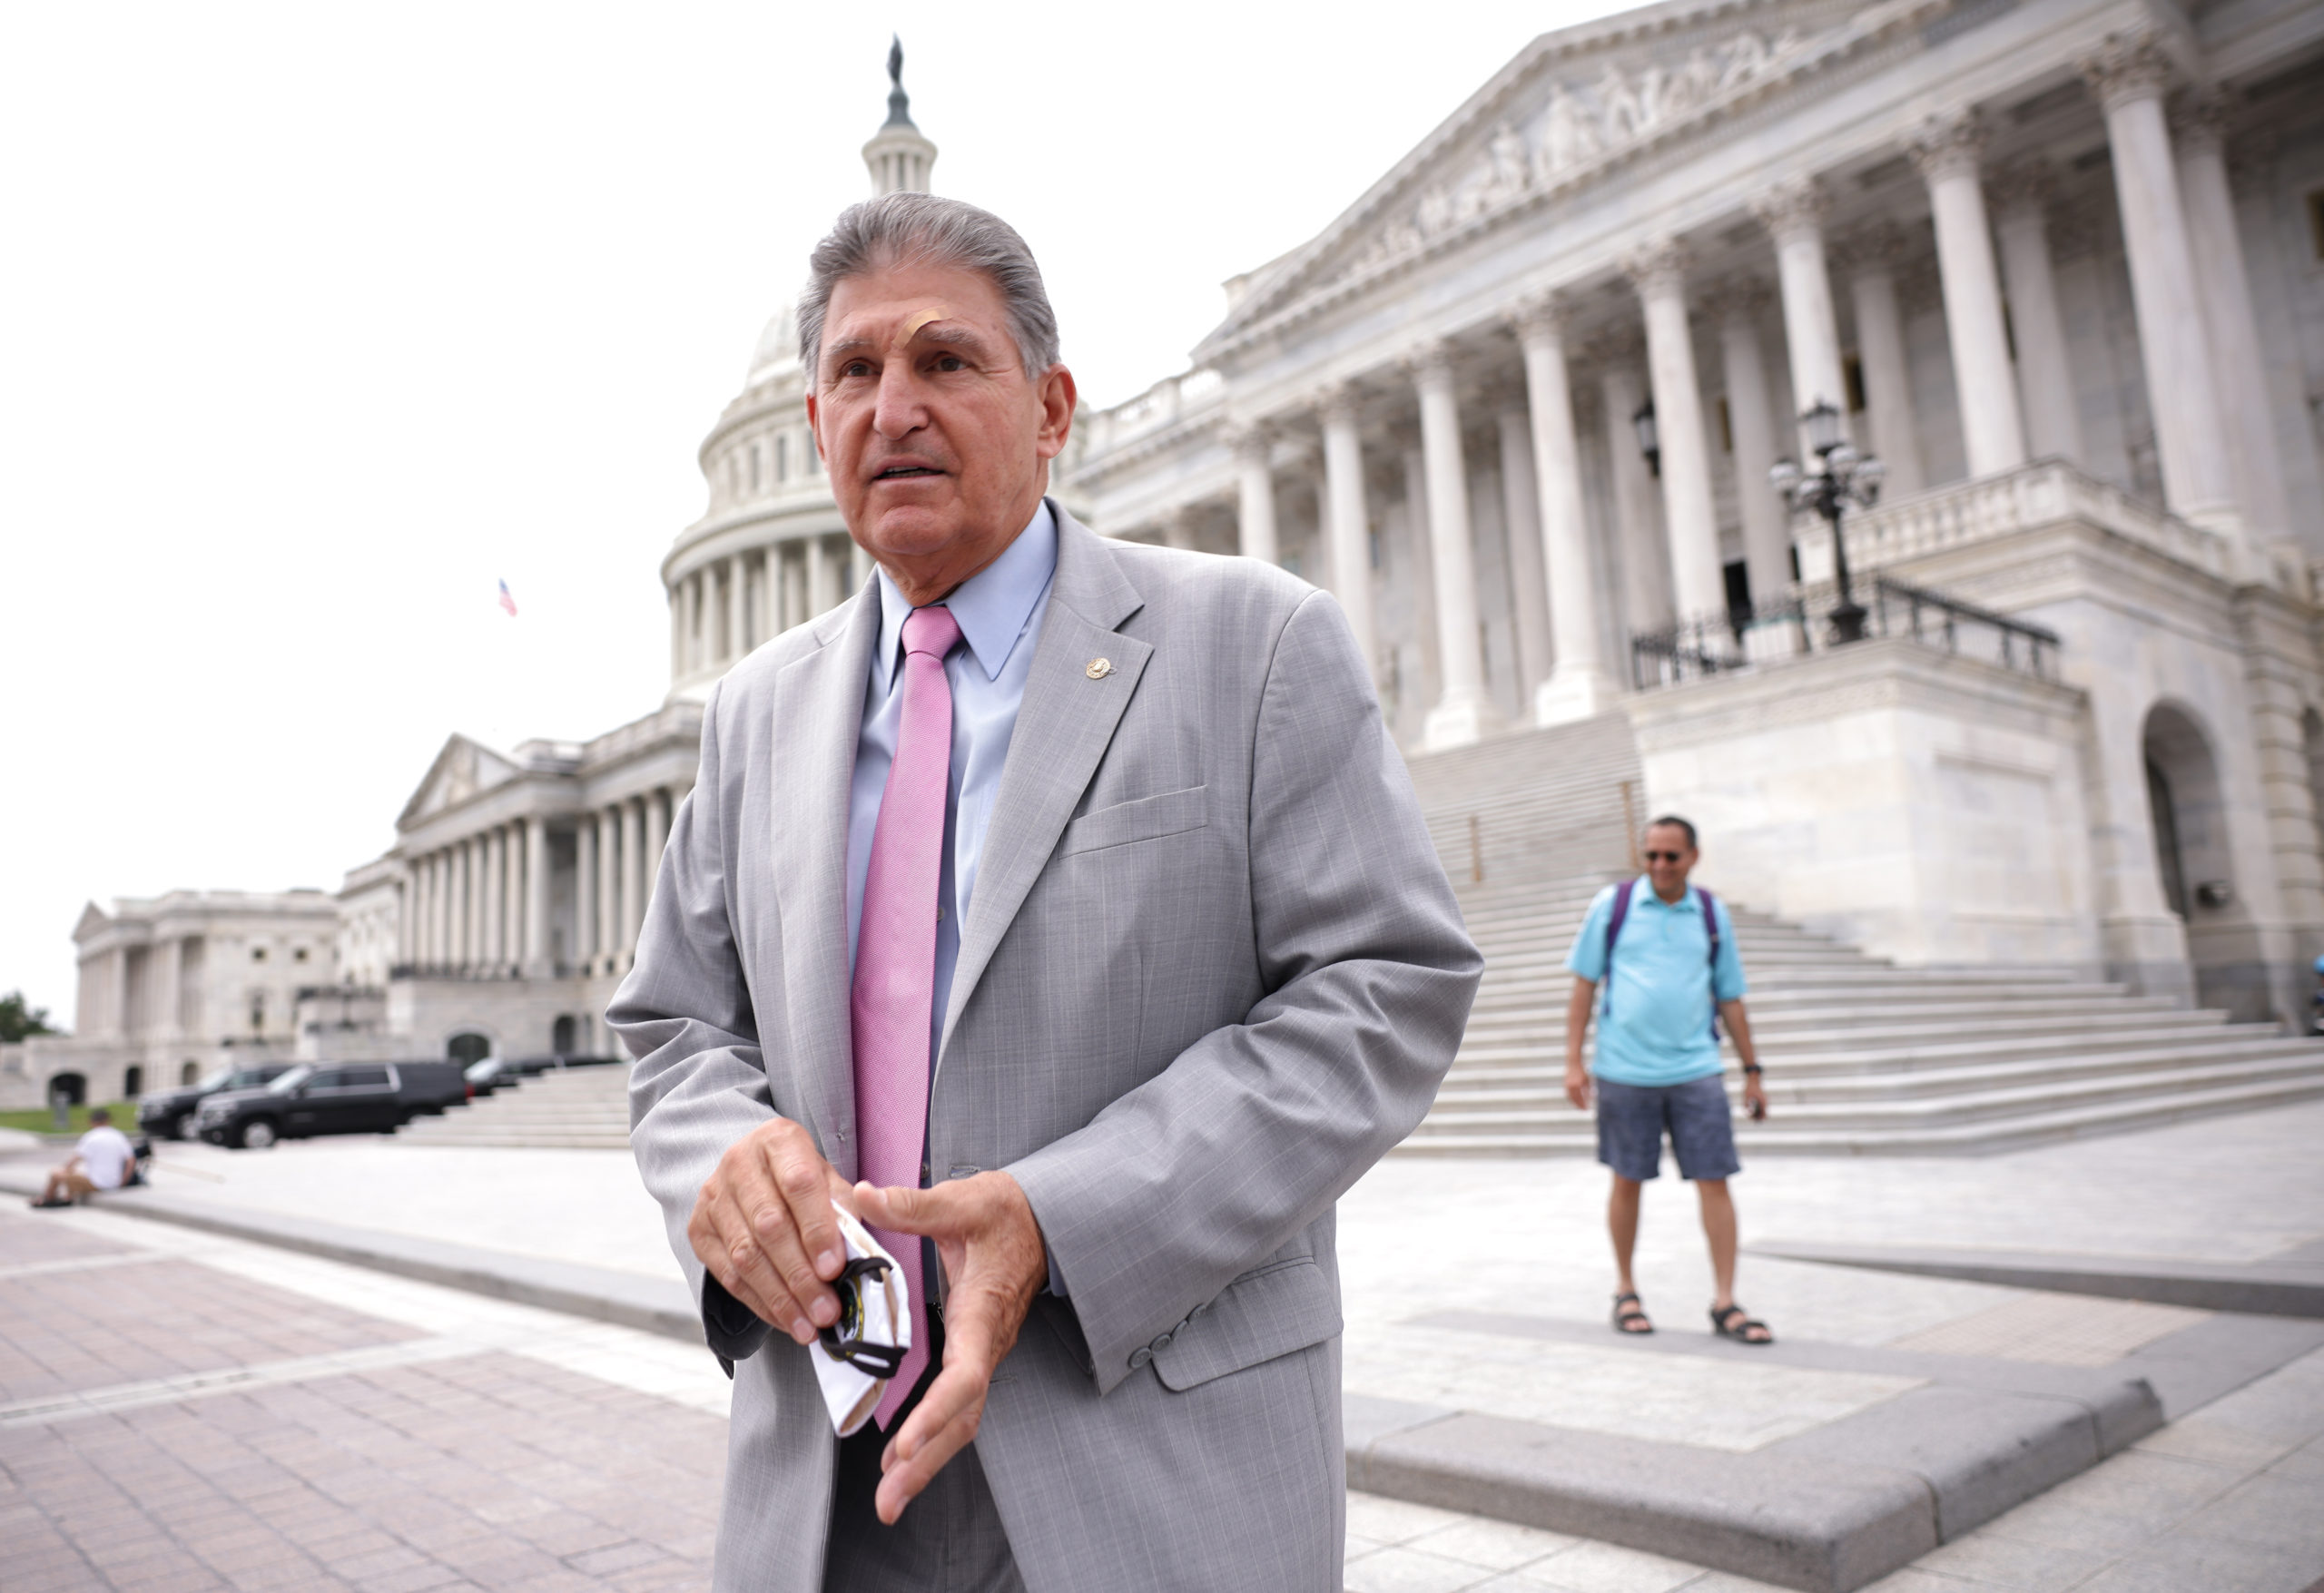 Sen. Joe Manchin in August. He has said he will not support a $3.5 trillion bill, citing the economy's strength, inflation and the national debt. (Kevin Dietsch/Getty Images)